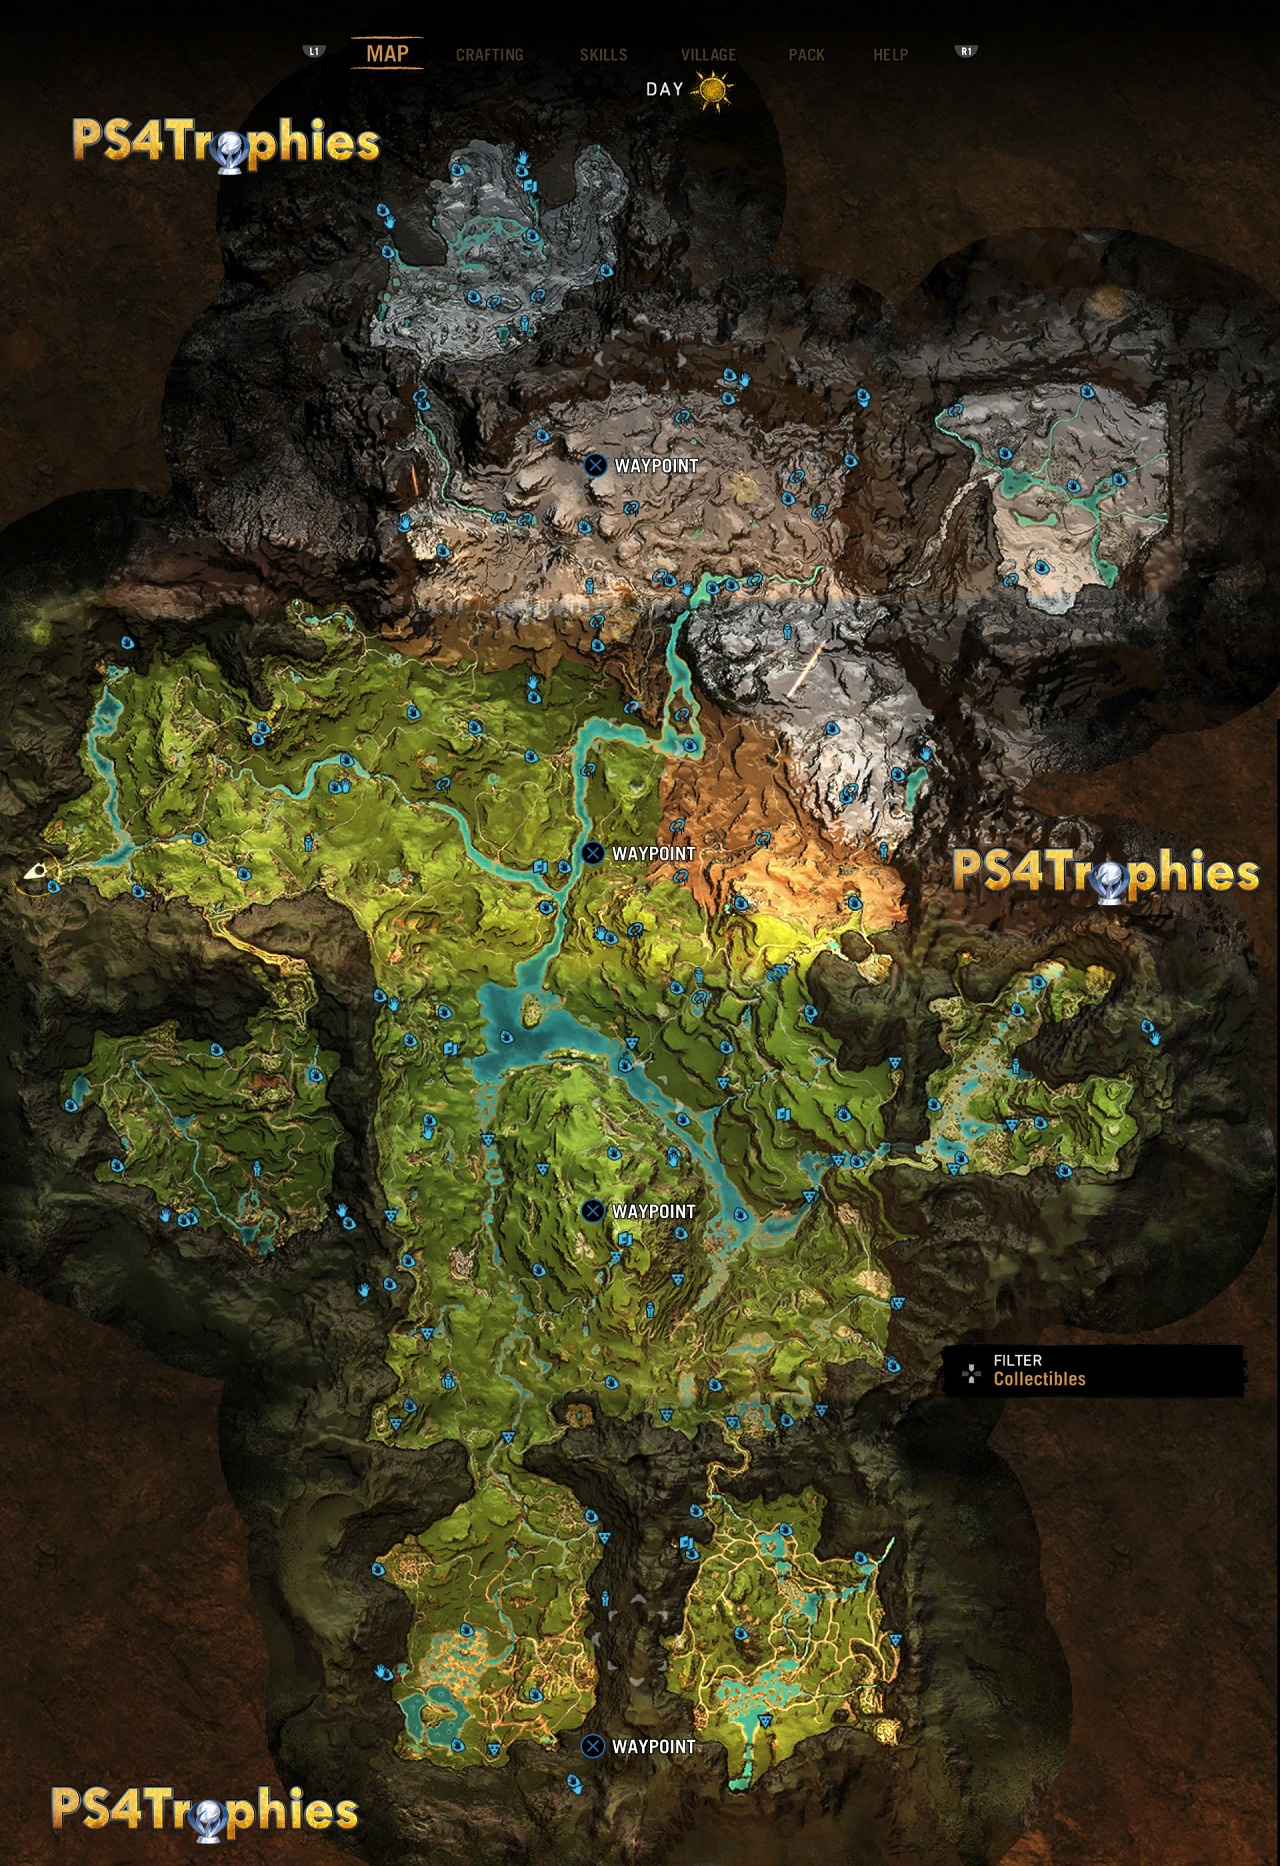 Man Cave Quest Far Cry 5 : Far cry primal collectible location guide for daysha hands